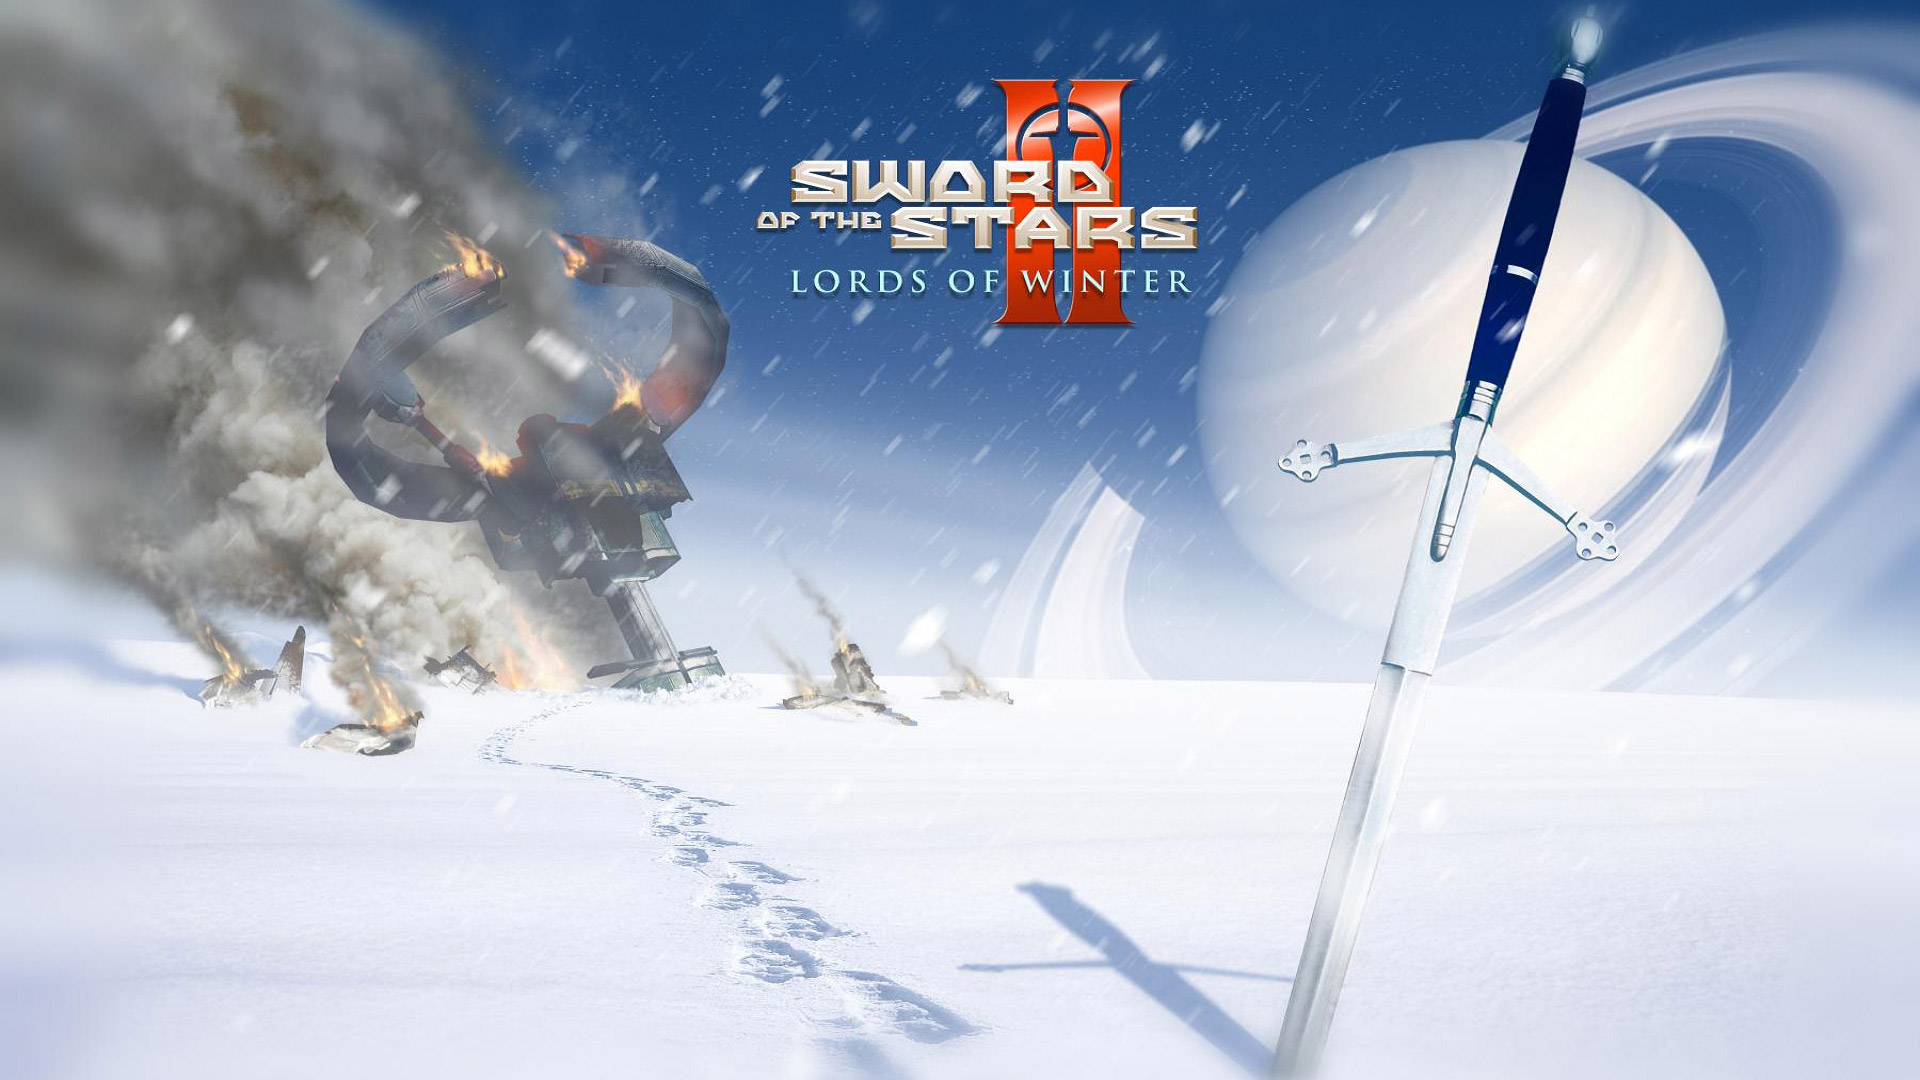 Free Sword of the Stars II: The Lords of Winter Wallpaper in 1920x1080